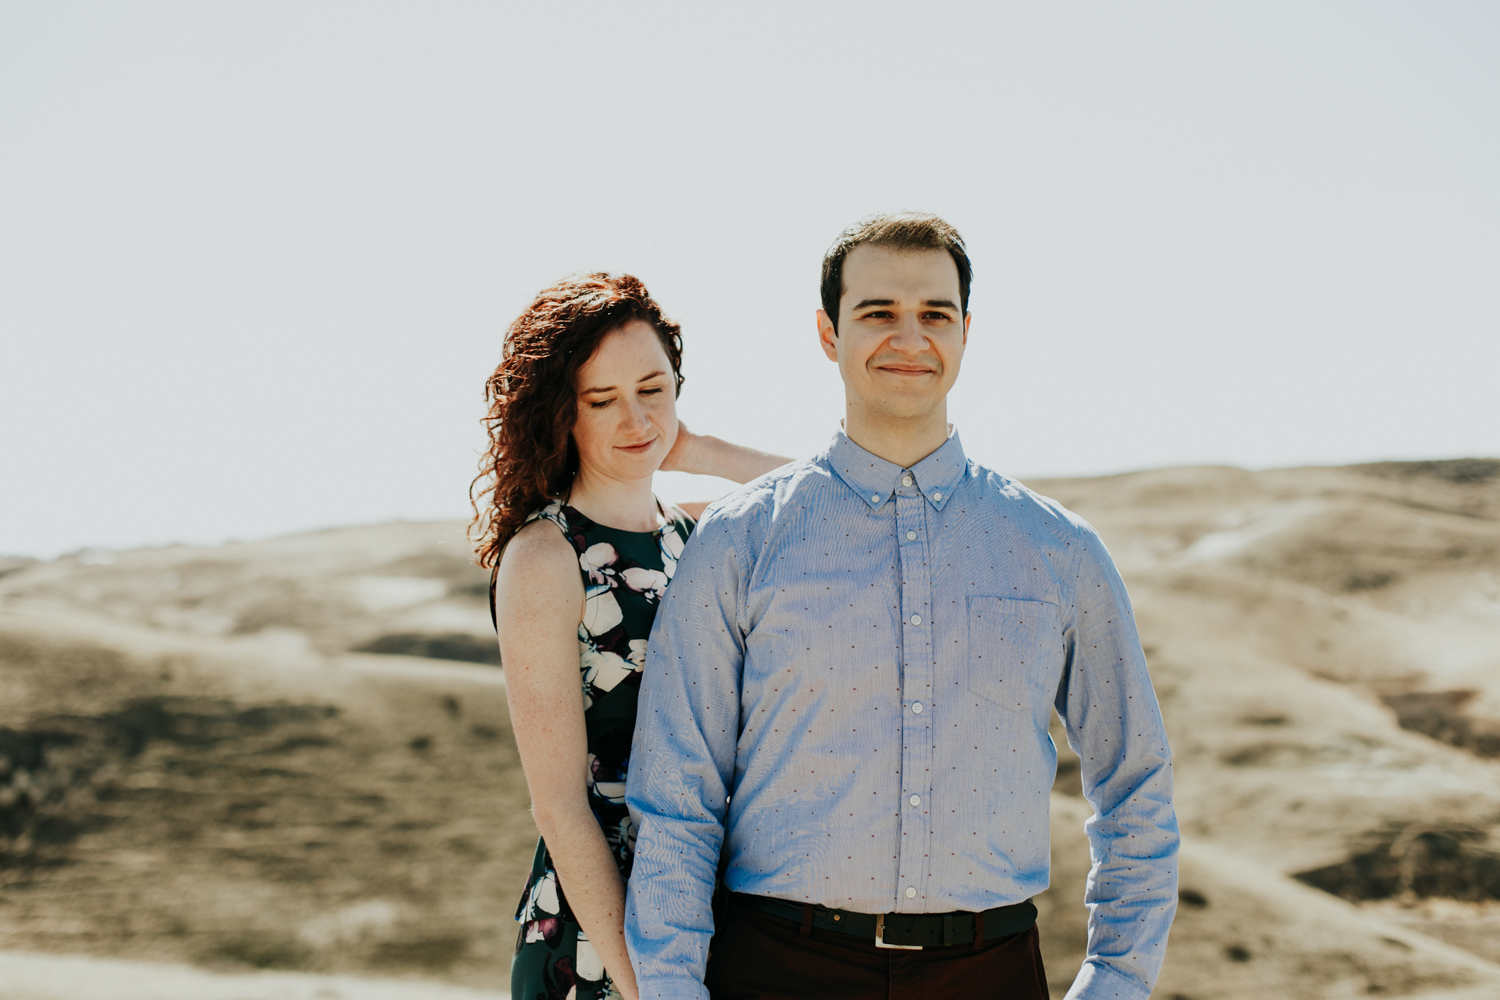 lethbridge-photographer-love-and-be-loved-photography-jodie-adam-coulee-hillside-engagement-photo-image-picture-28.jpg